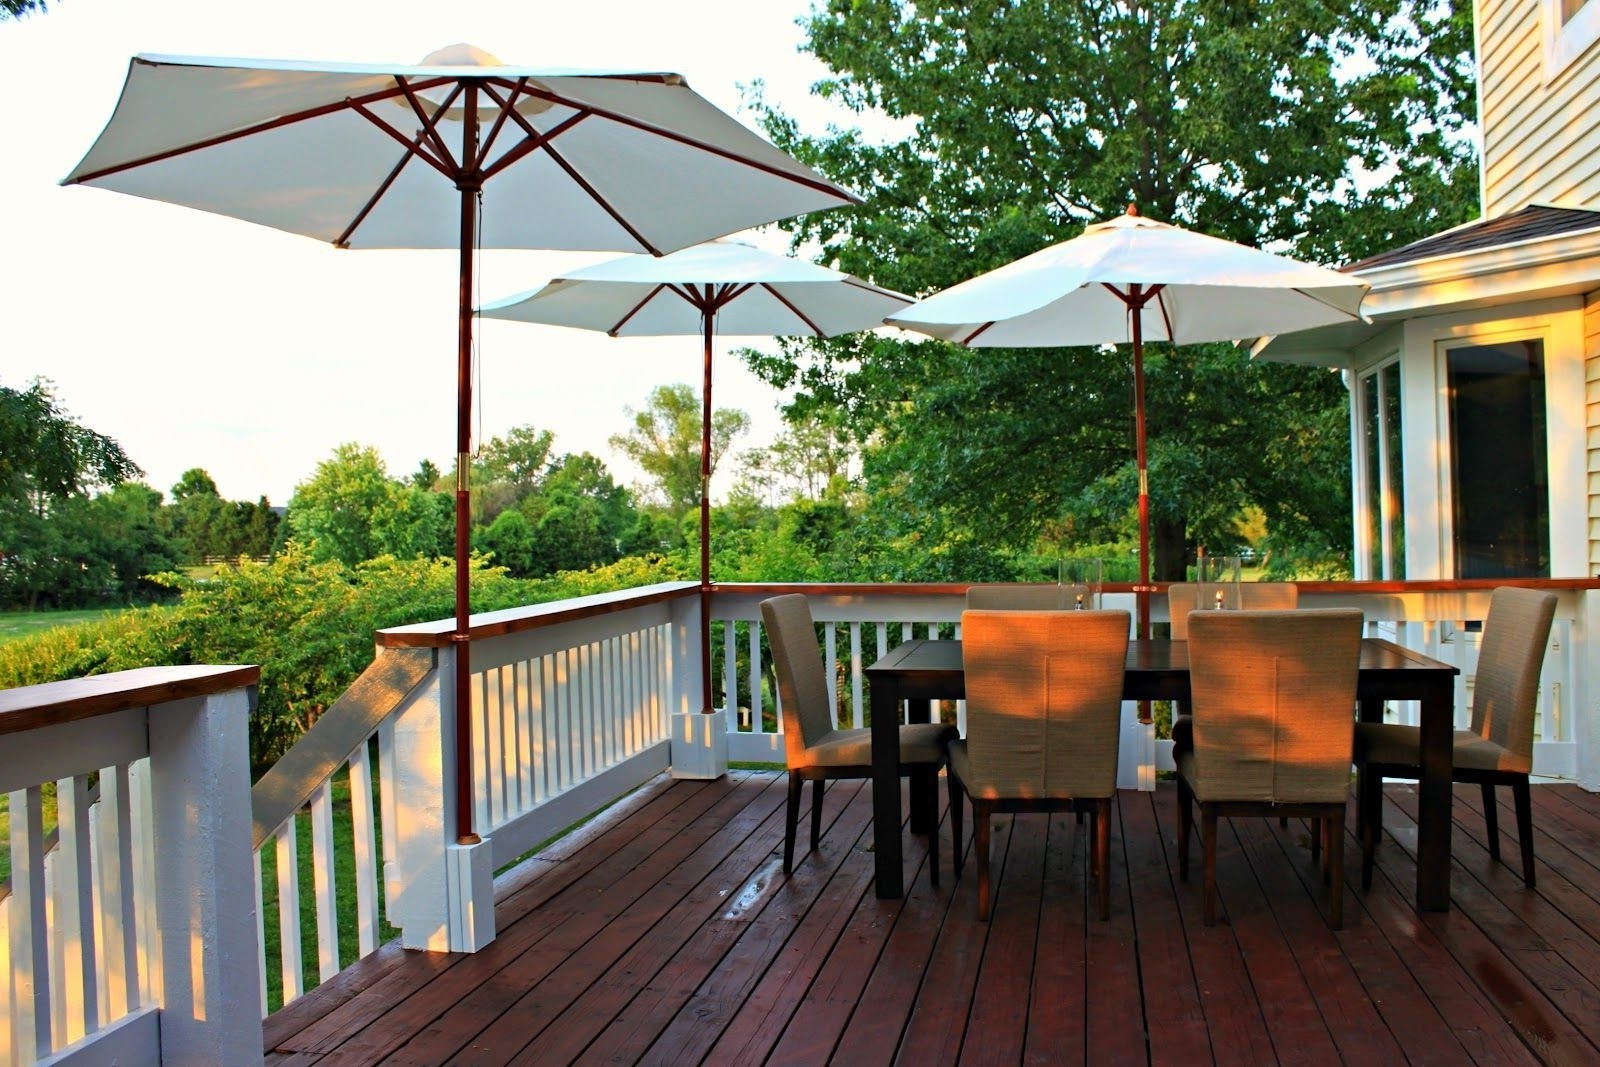 Recent Extended Patio Umbrellas For Image Result For How To Attach Patio Umbrella To Fence (View 18 of 20)